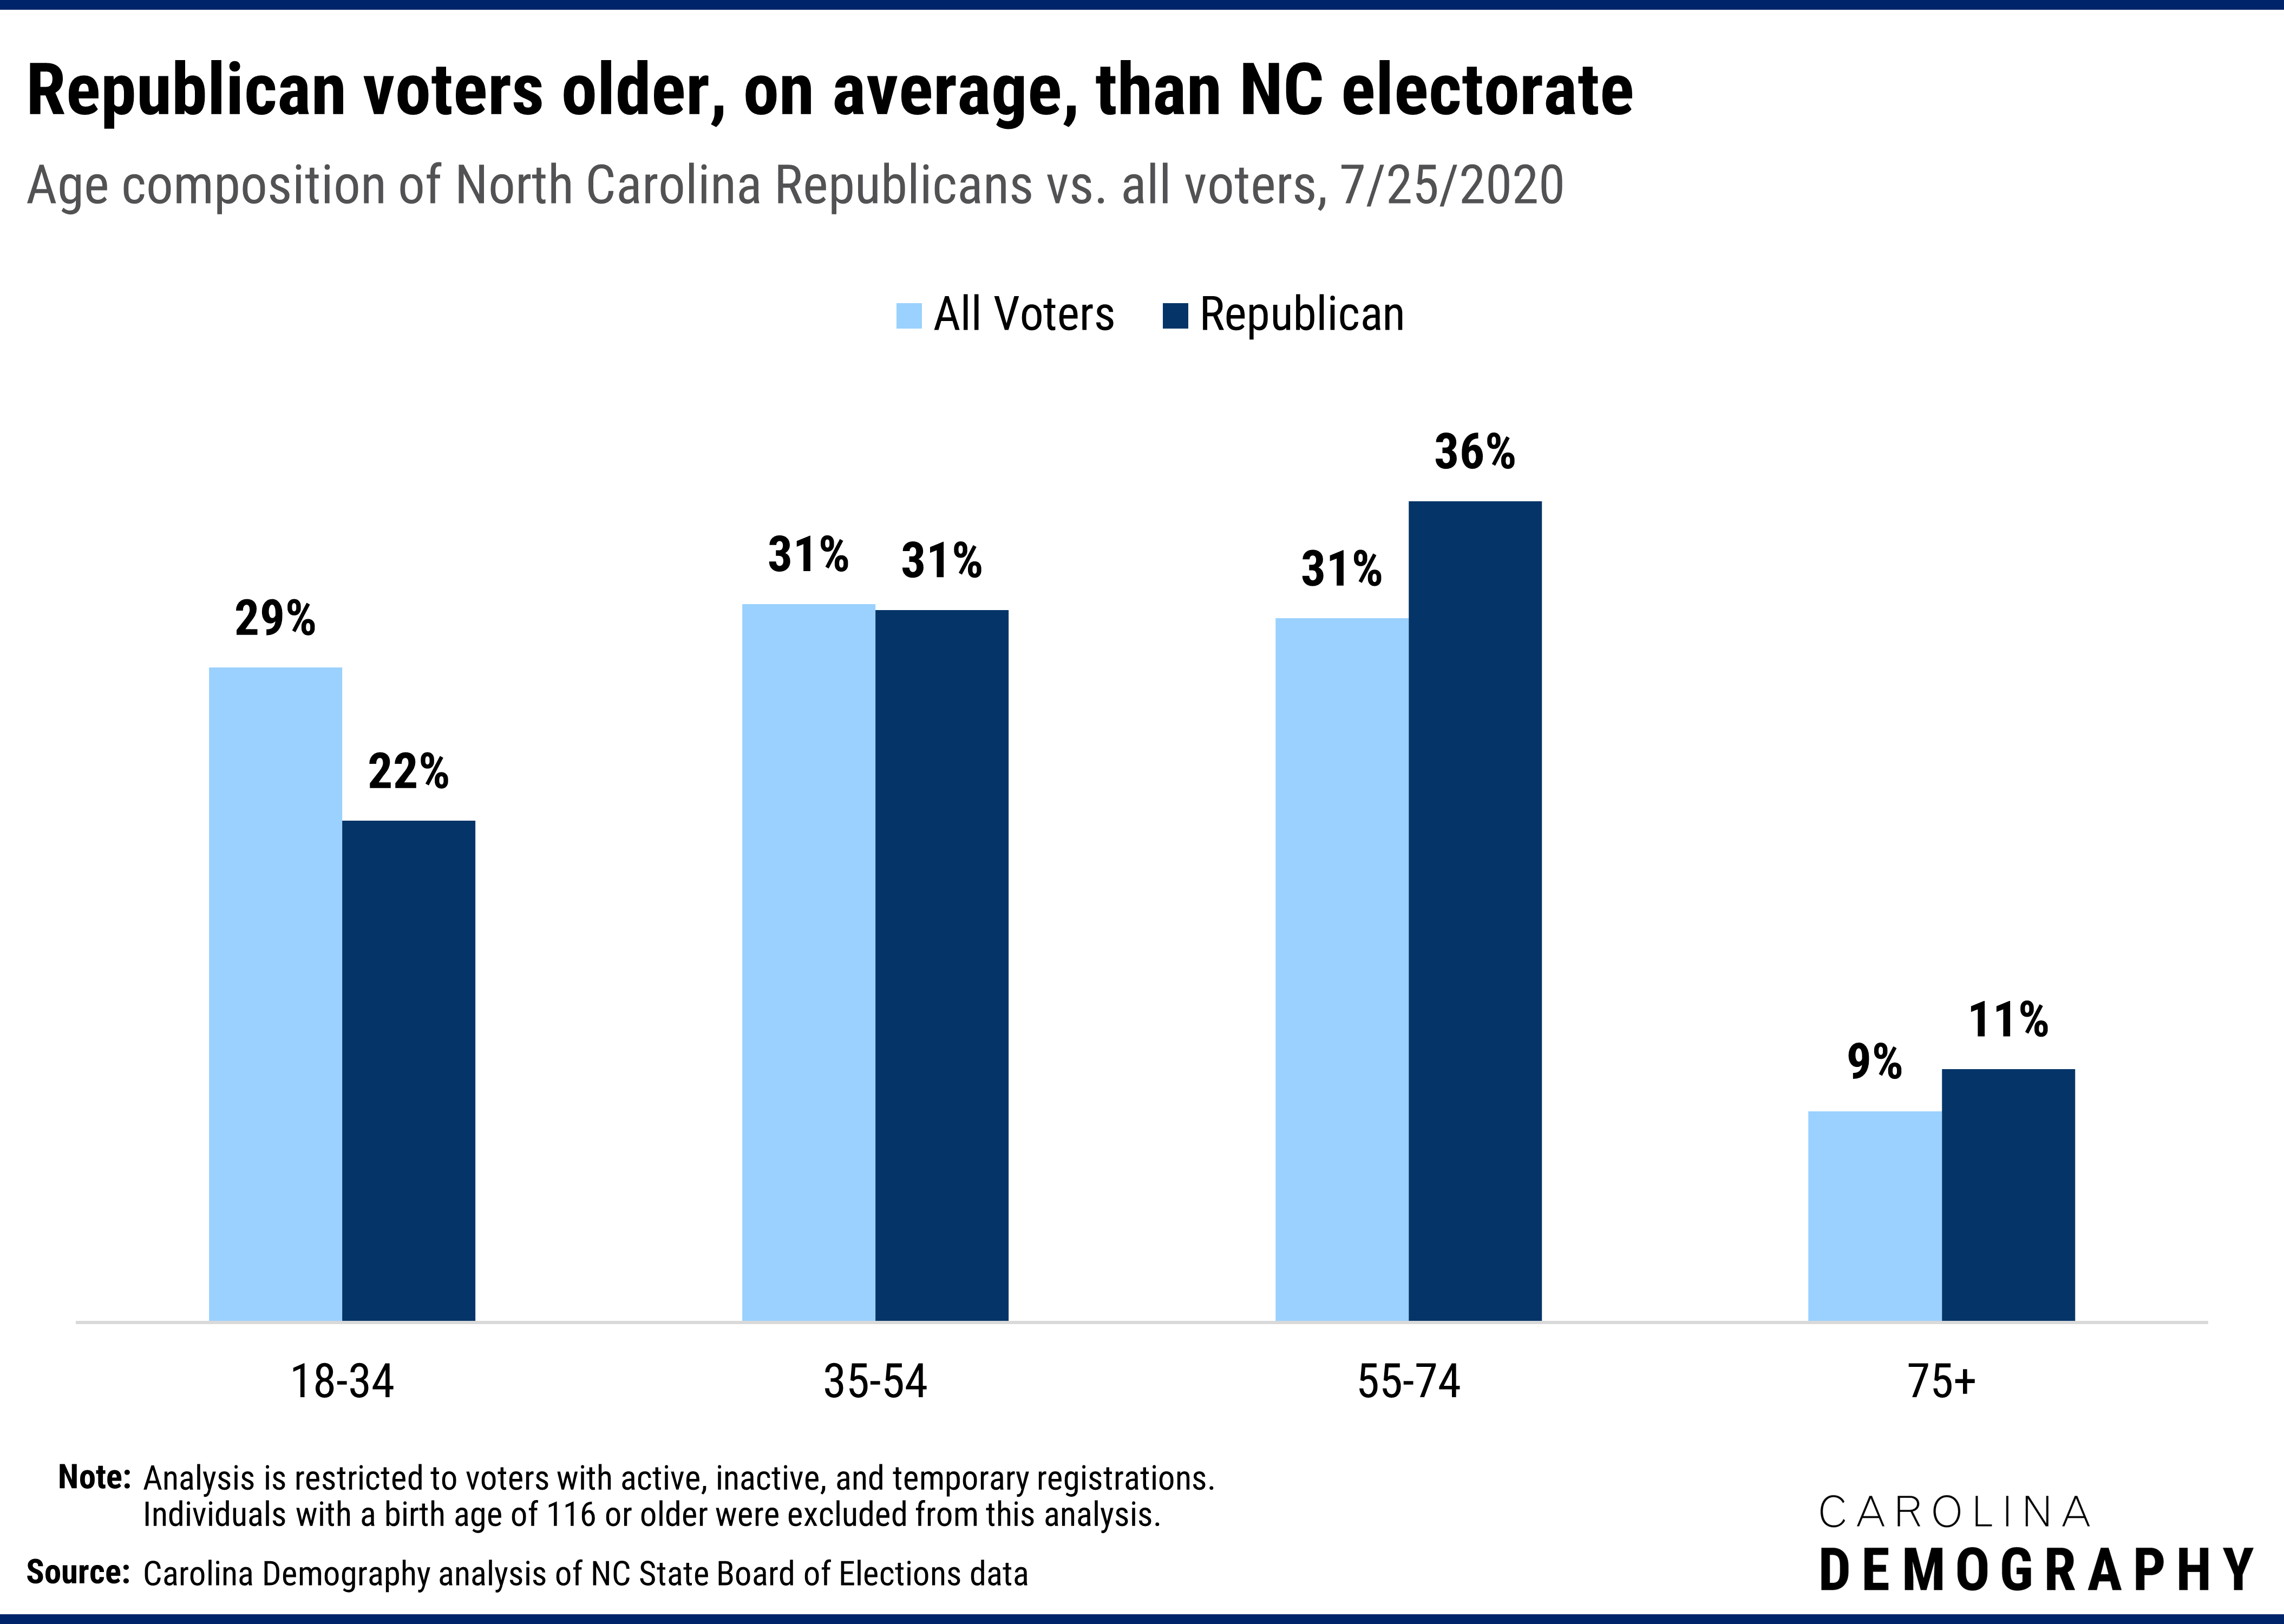 Republican voters older, on average, than NC electorate Age composition of North Carolina Republicans vs. all voters, 7/25/2020. Younger voters are the least likely to register as Republican, reflecting their higher affinity for registering unaffiliated. Just 23% of voters ages 18-34 are registered Republican compared to 30% of 35-54 year-olds, 35% of 55-74 year-olds, and 36% of voters ages 75 and older. As a result, older adults, especially those ages 55-74, comprise a larger share of Republican voters than the overall electorate: 40% of all voters are ages 55+ compared to 47% of registered Republican voters.